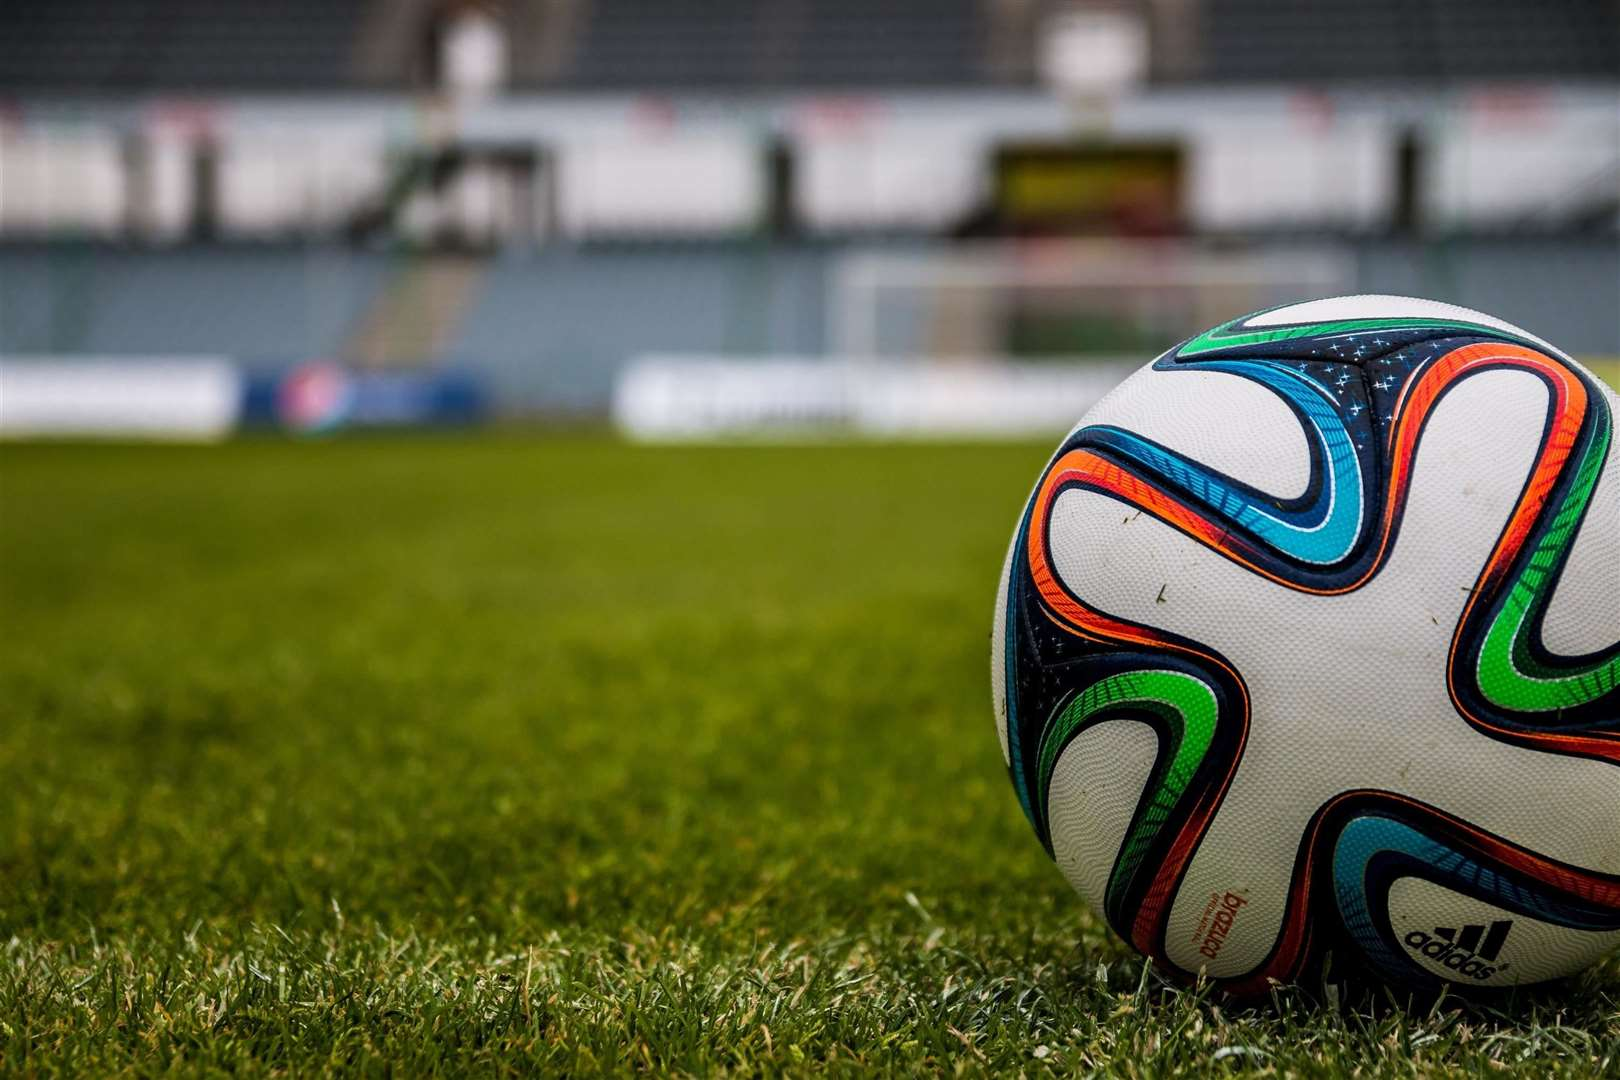 Sports matches have been effected across the county